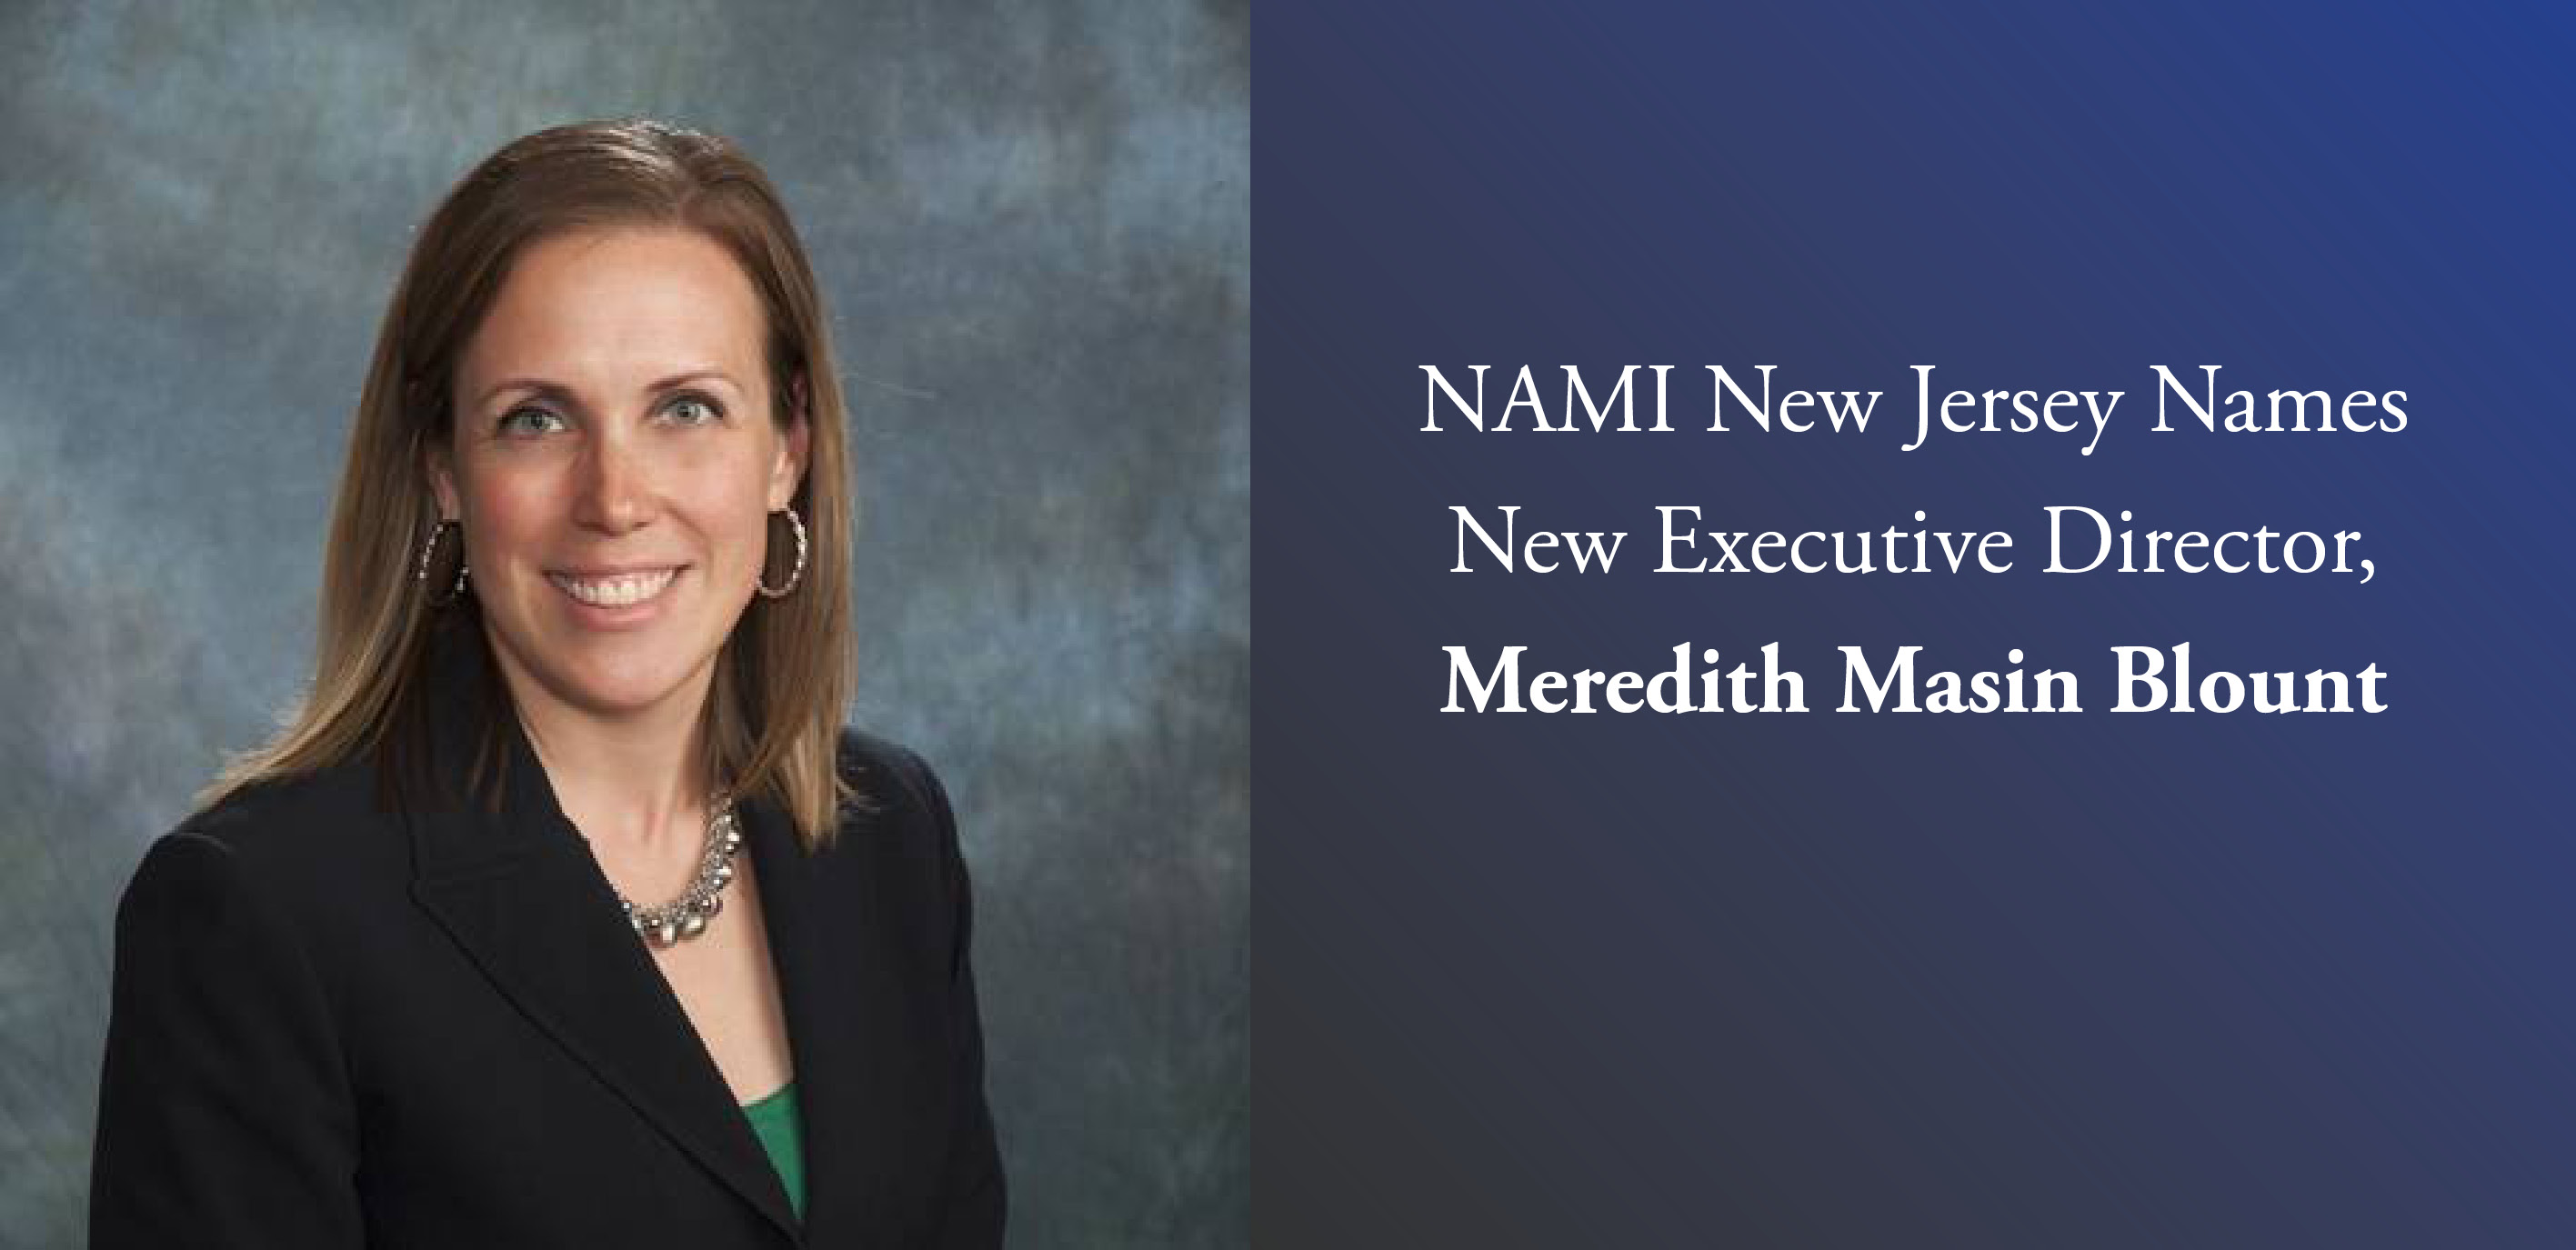 NAMI NJ Names New Executive Director